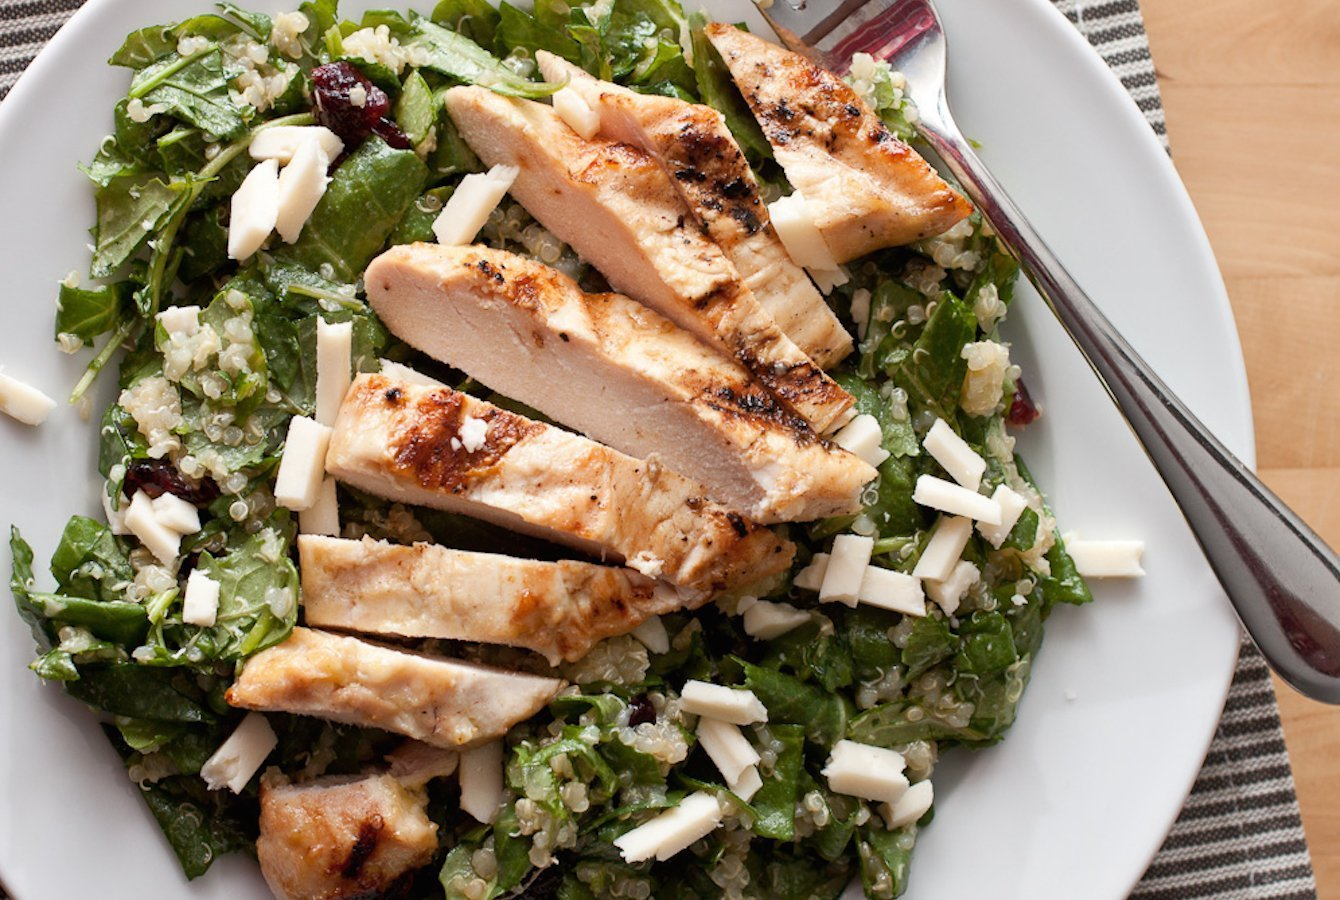 Kale and Quinoa Salad with Maple Dijon Grilled Chicken